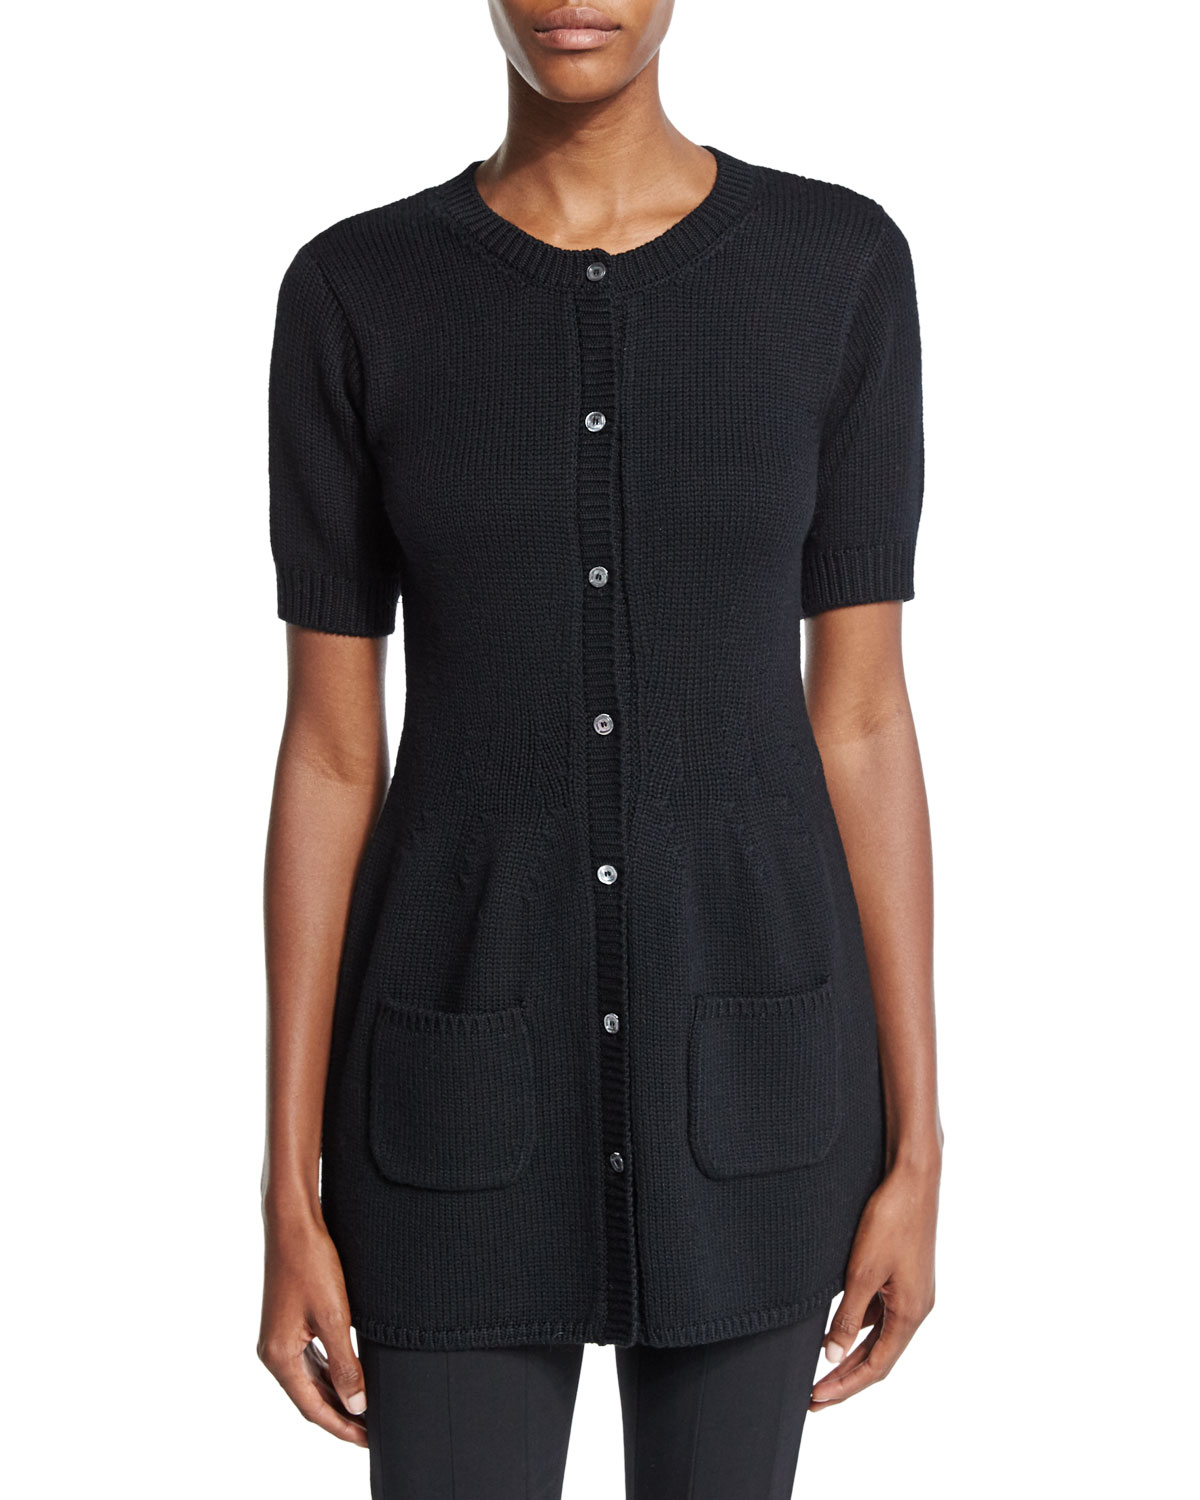 Find black cardigan sweater pockets at ShopStyle. Shop the latest collection of black cardigan sweater pockets from the most popular stores - all in.